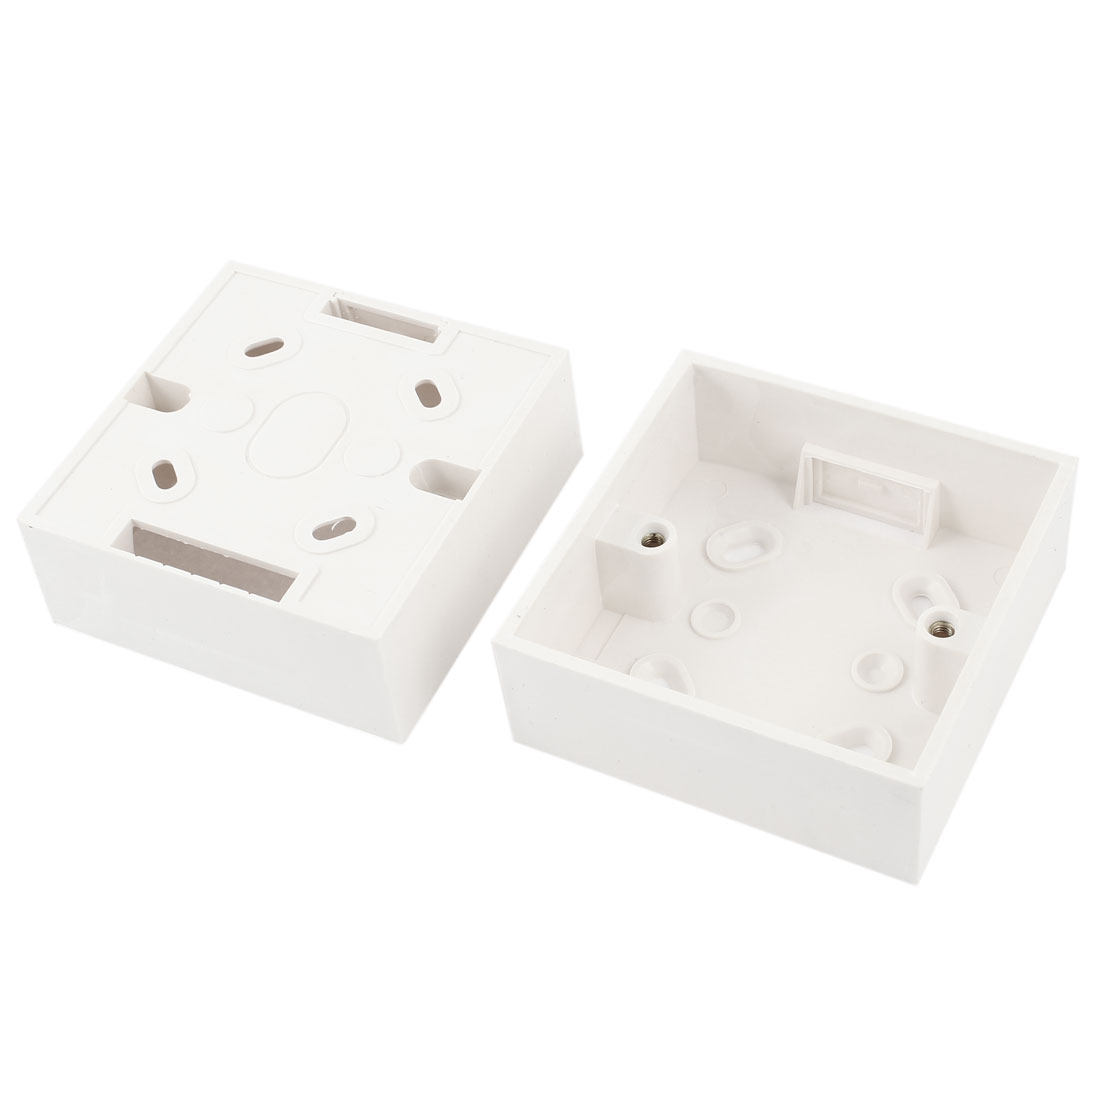 2pcs AC 250V 10A Surface Type White PVC Mount Back Box for Wall Socket